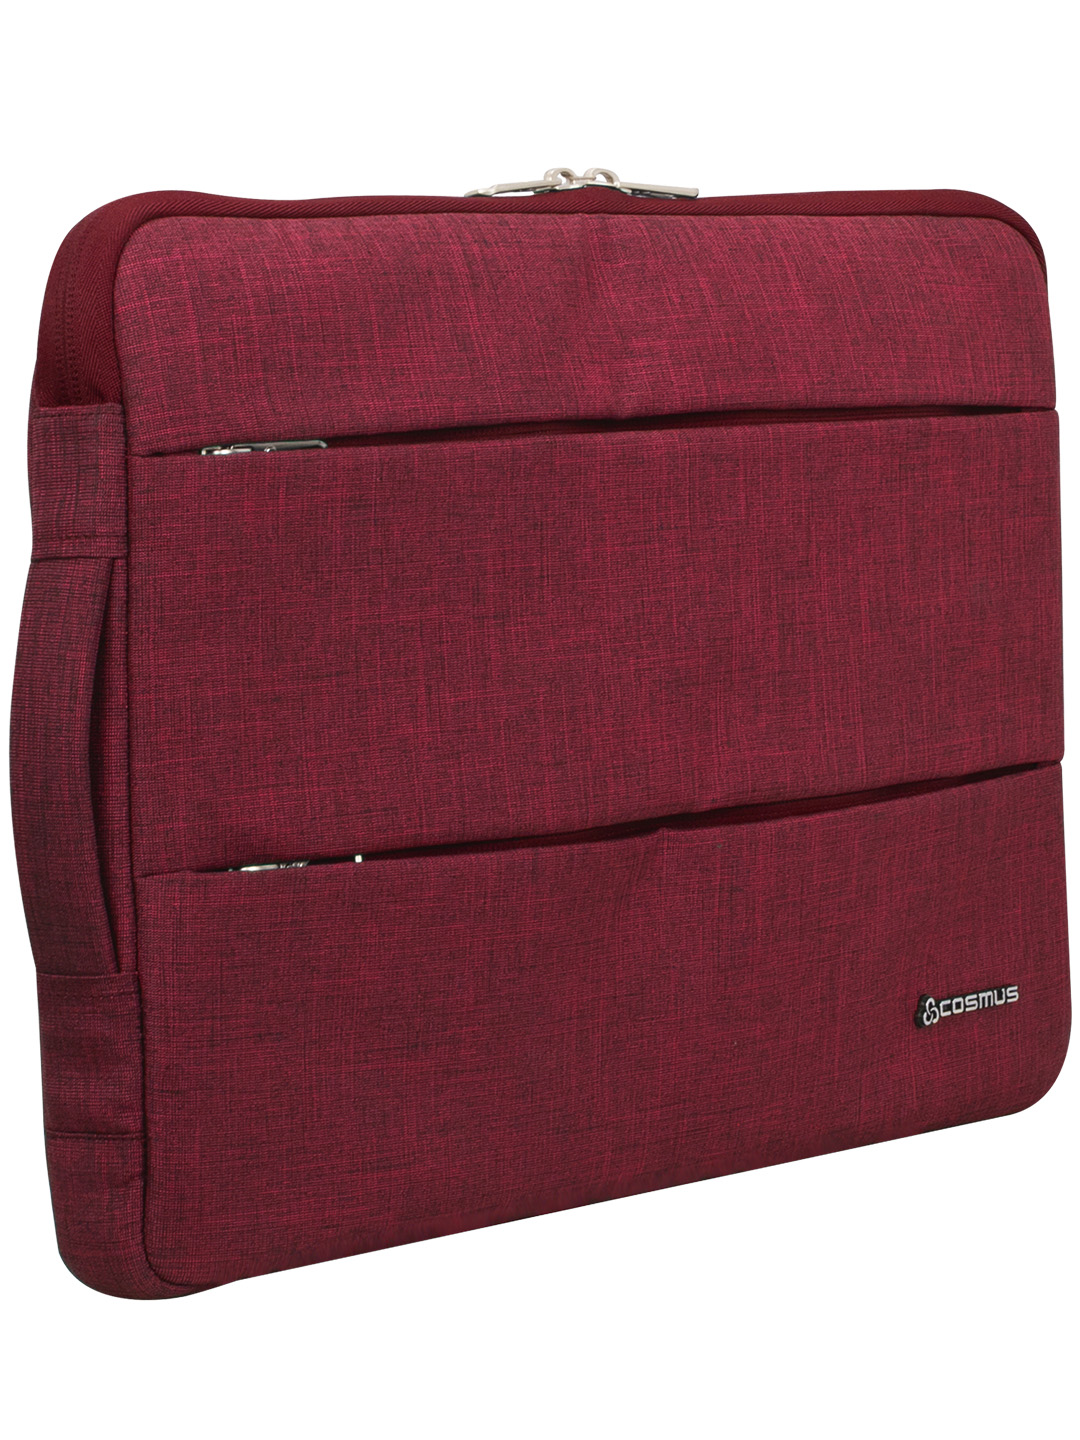 Cosmus Impact Maroon Laptop Sleeve up to 15.6 inches